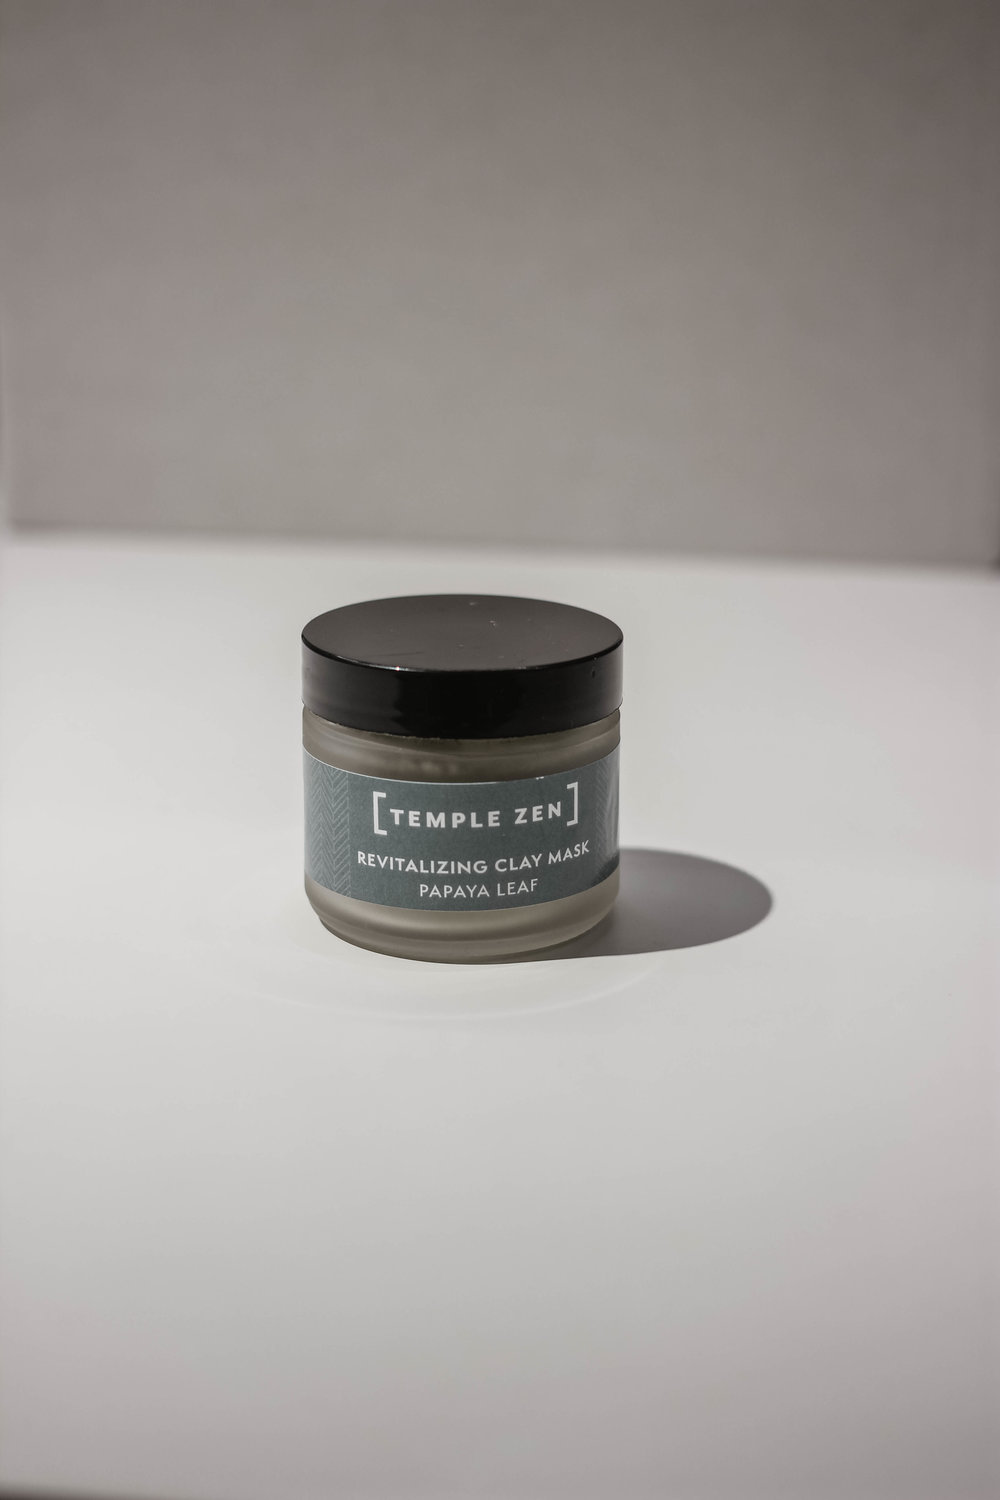 Papaya Leaf Clay Mask - Once or Twice a week I will do a mask after i cleanse. I will mix the powder contents with water or ACV and apply the creamy mixture using my mask applicator. I like it on for about 15-20 minutes. Then I rinse it off.